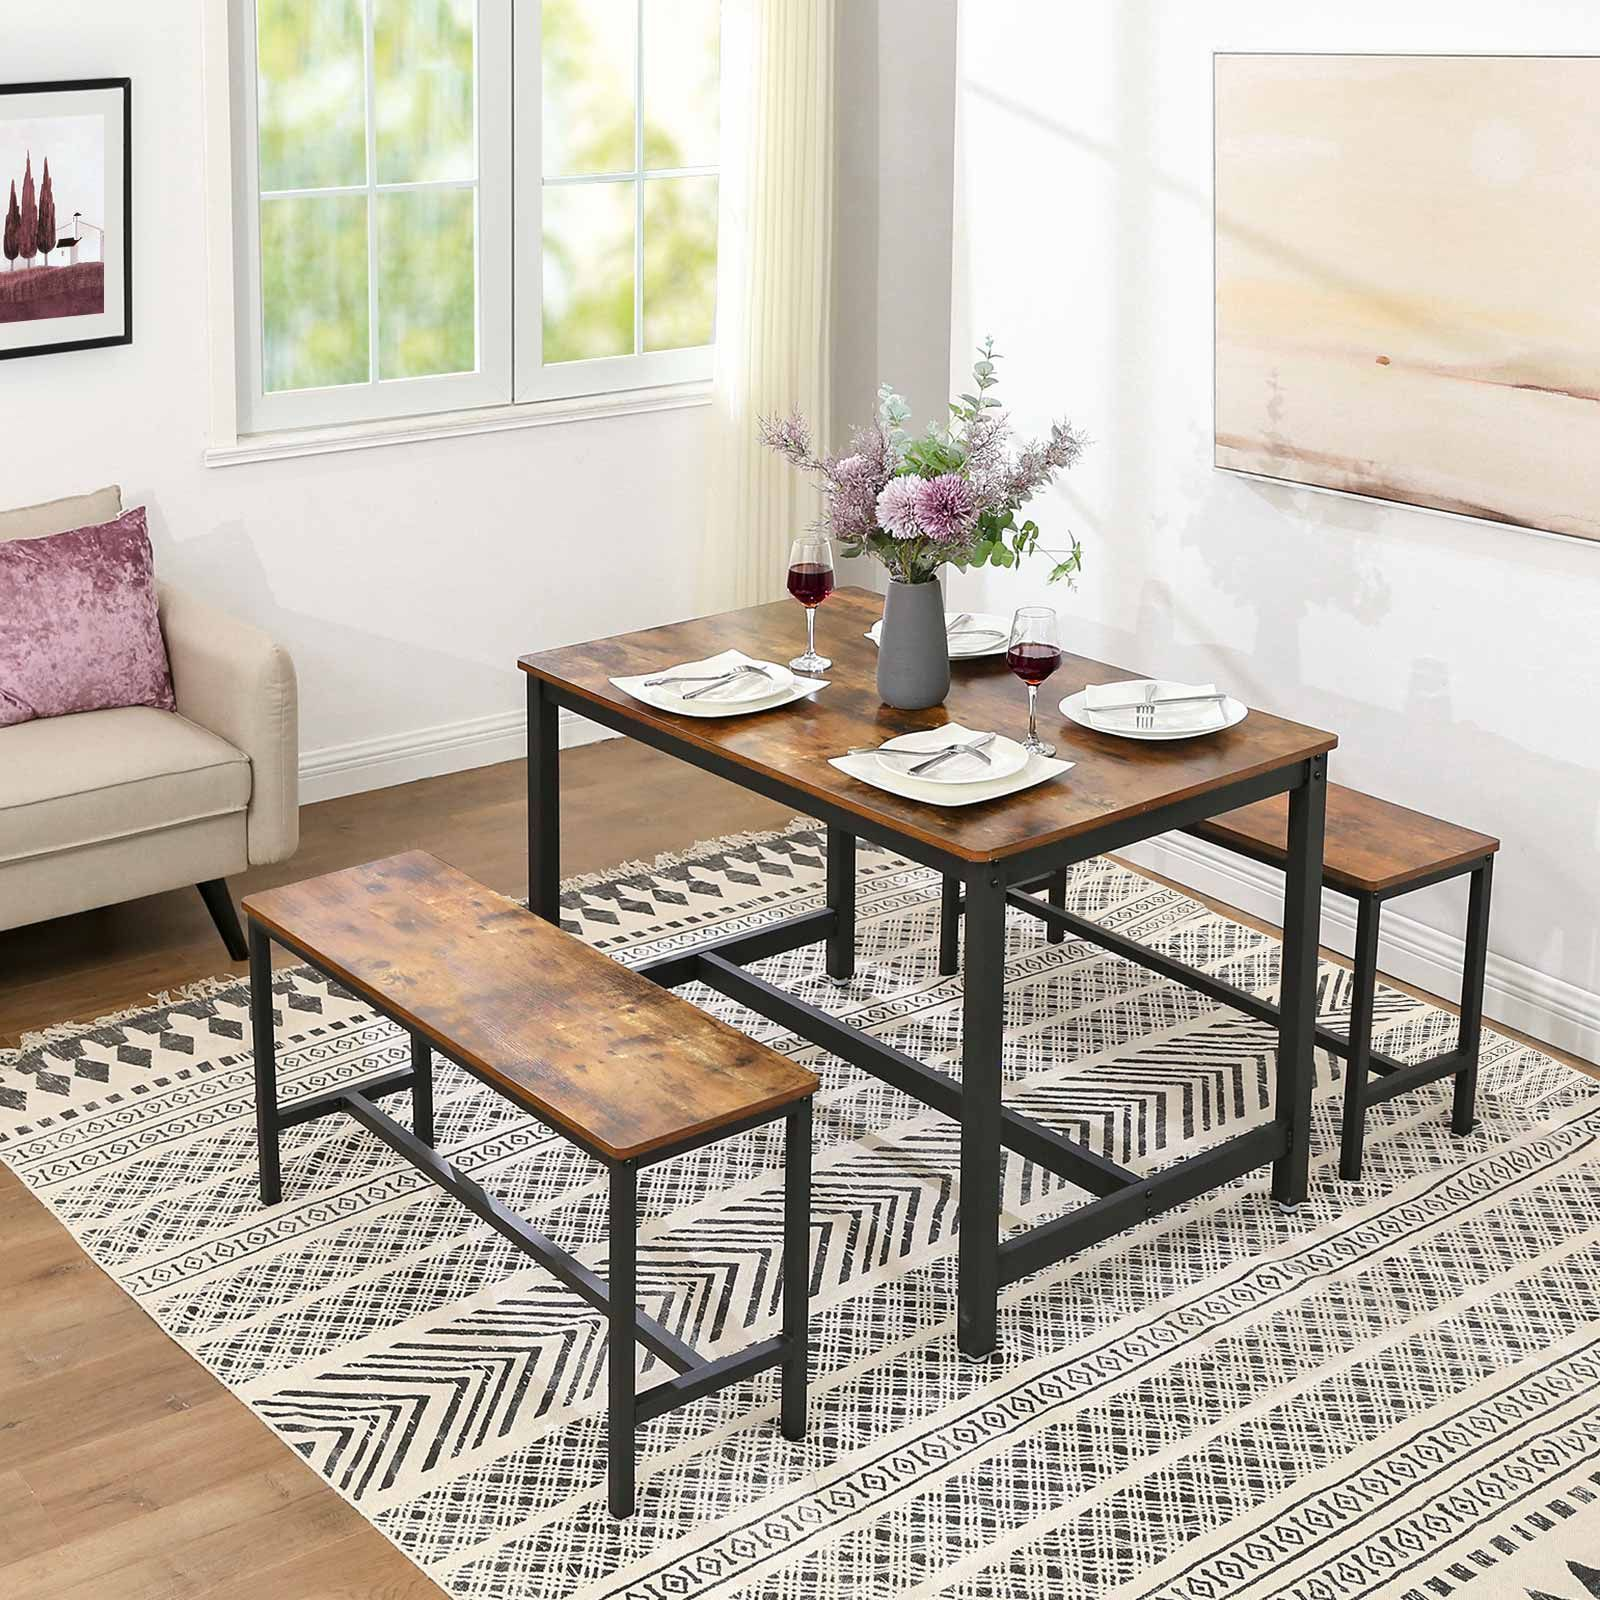 Dining Table Benches Set Of 2 Home Furniture Industrial Style Dining Table Dining Table With Bench Dining Table Setting